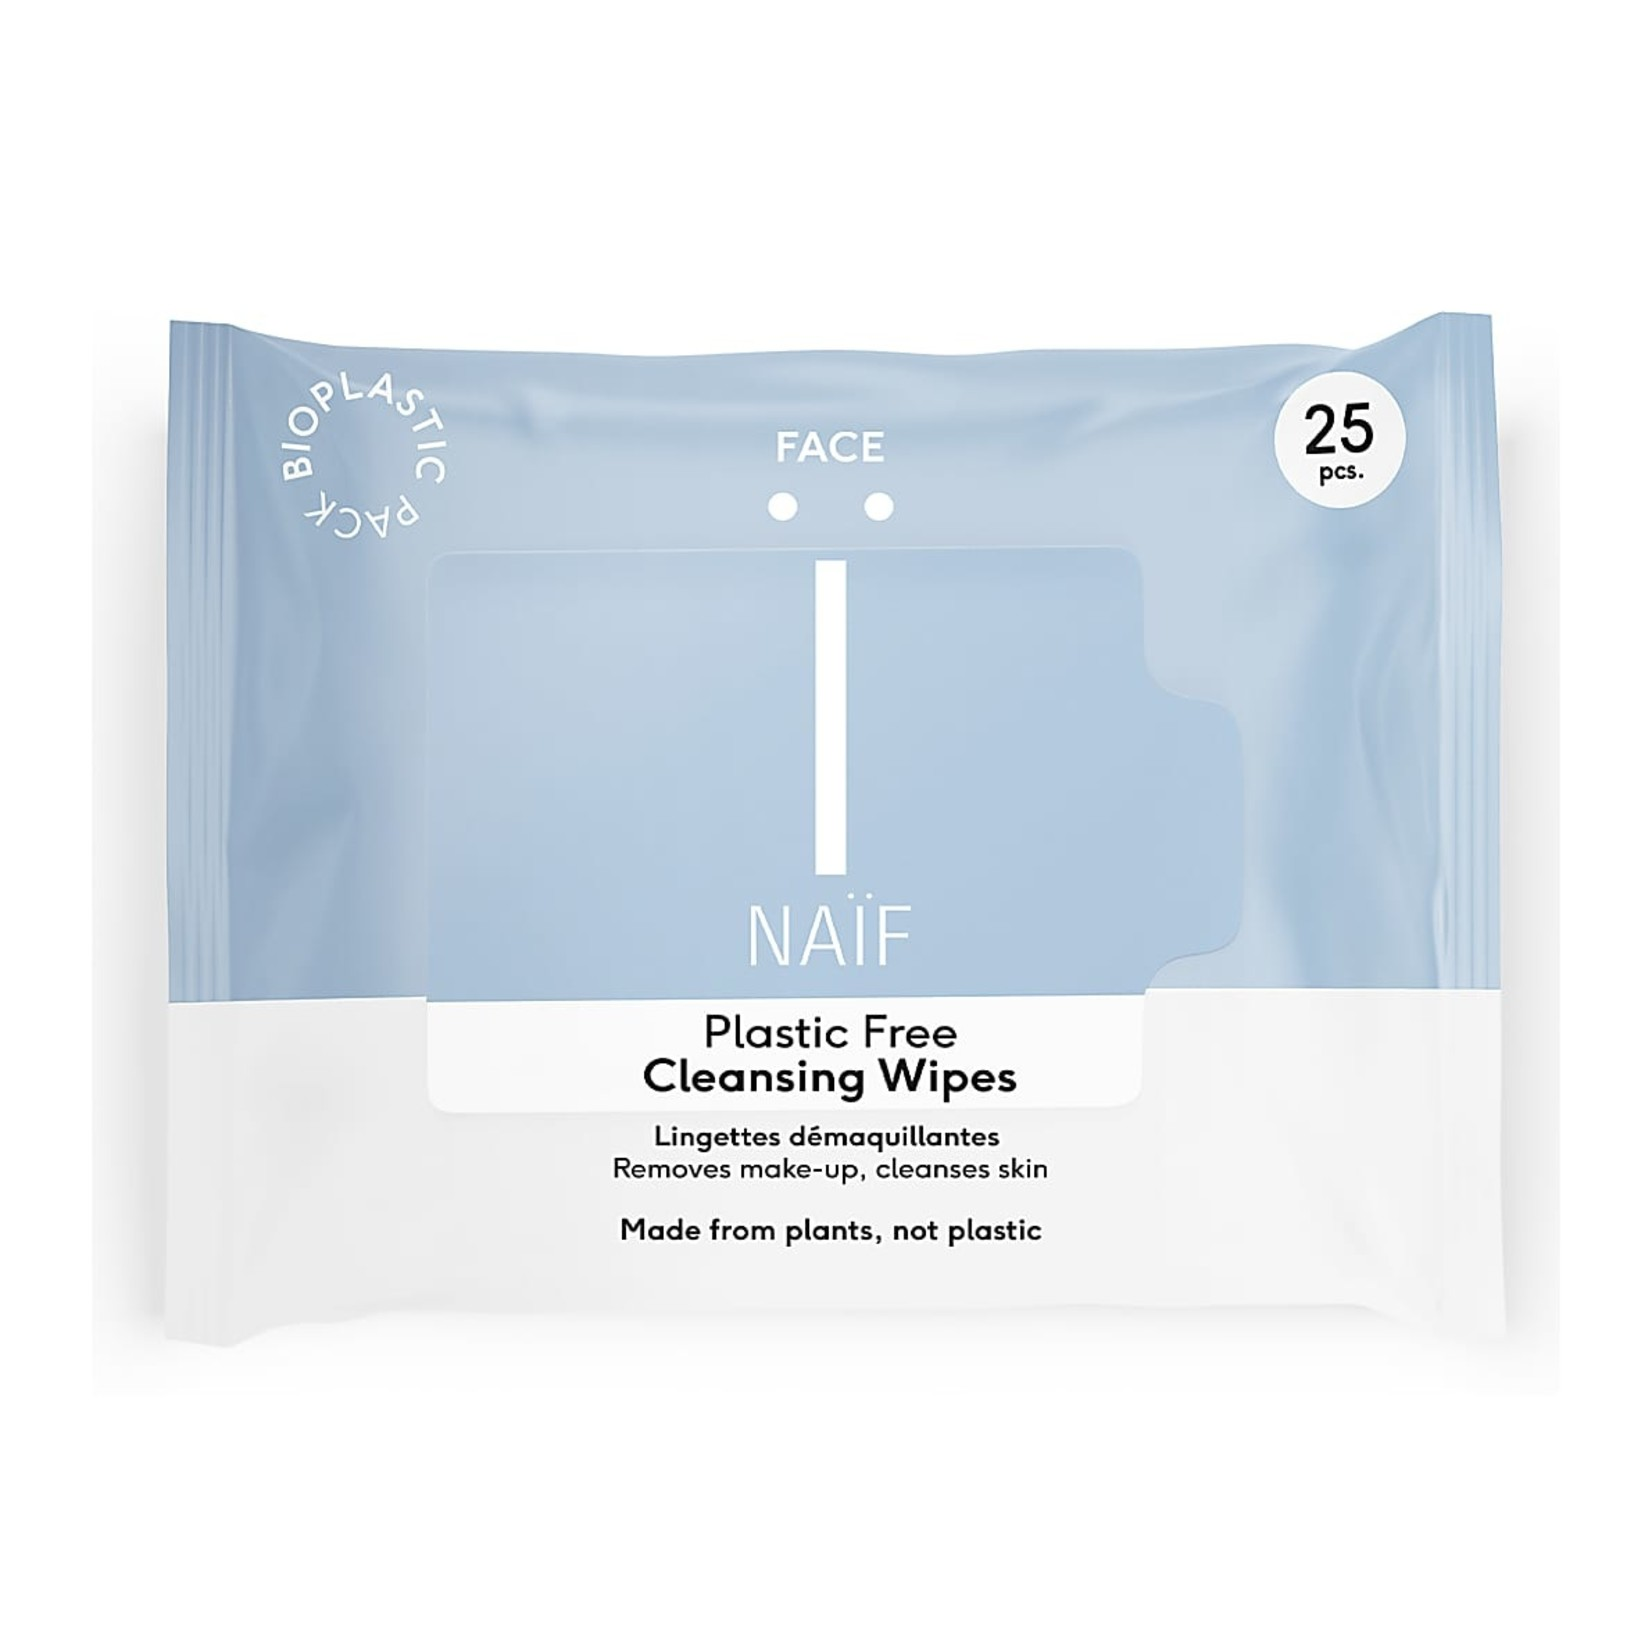 Naïf Plastic Free Cleansing Face Wipes